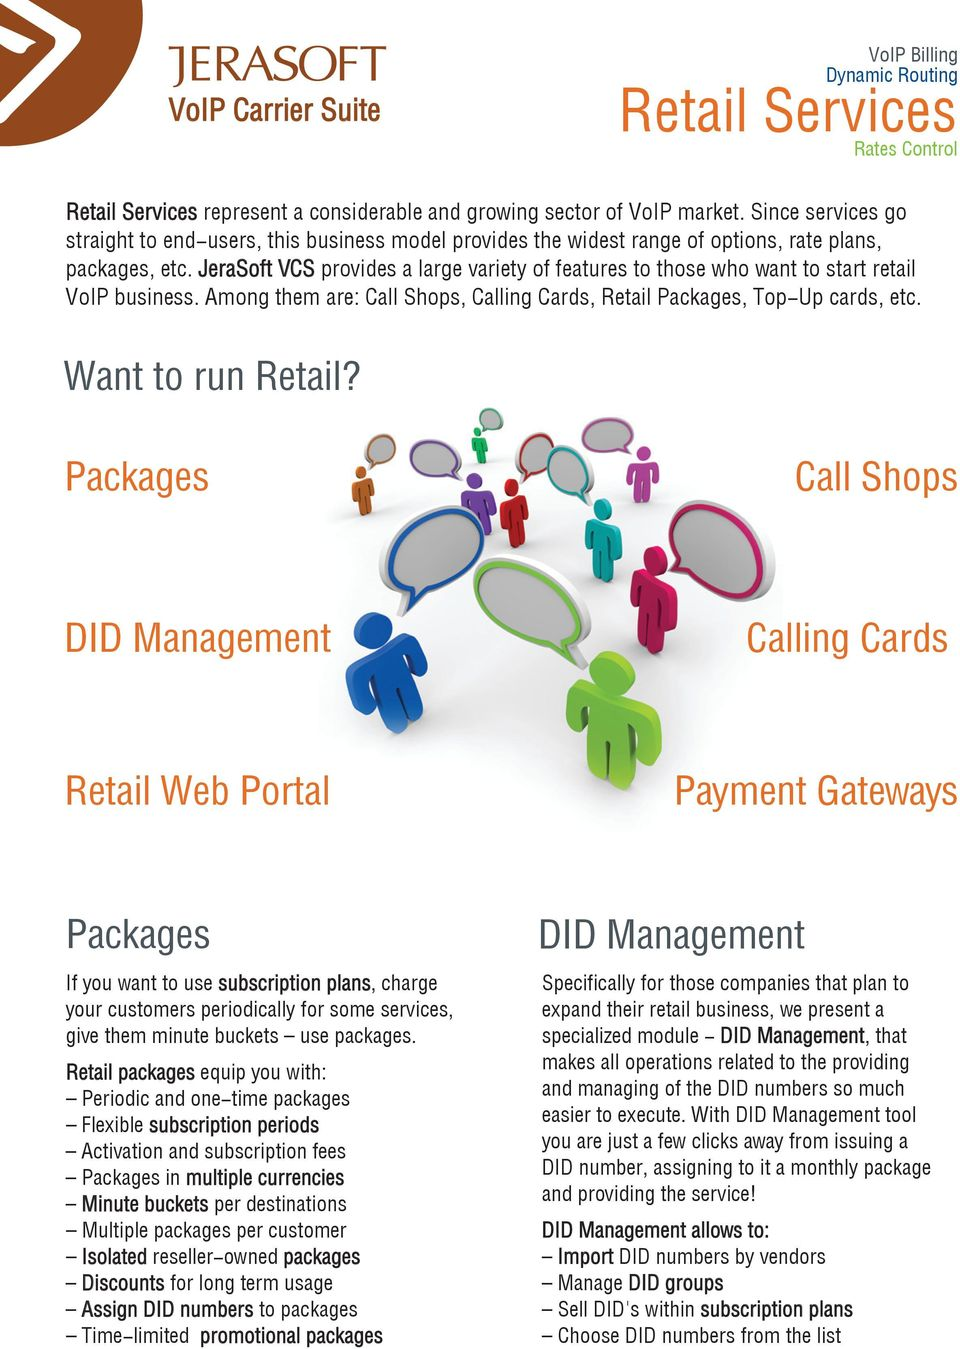 JeraSoft VCS provides a large variety of features to those who want to start retail VoIP business. Among them are: Call Shops, Calling Cards, Retail Packages, Top-Up cards, etc. Want to run Retail?